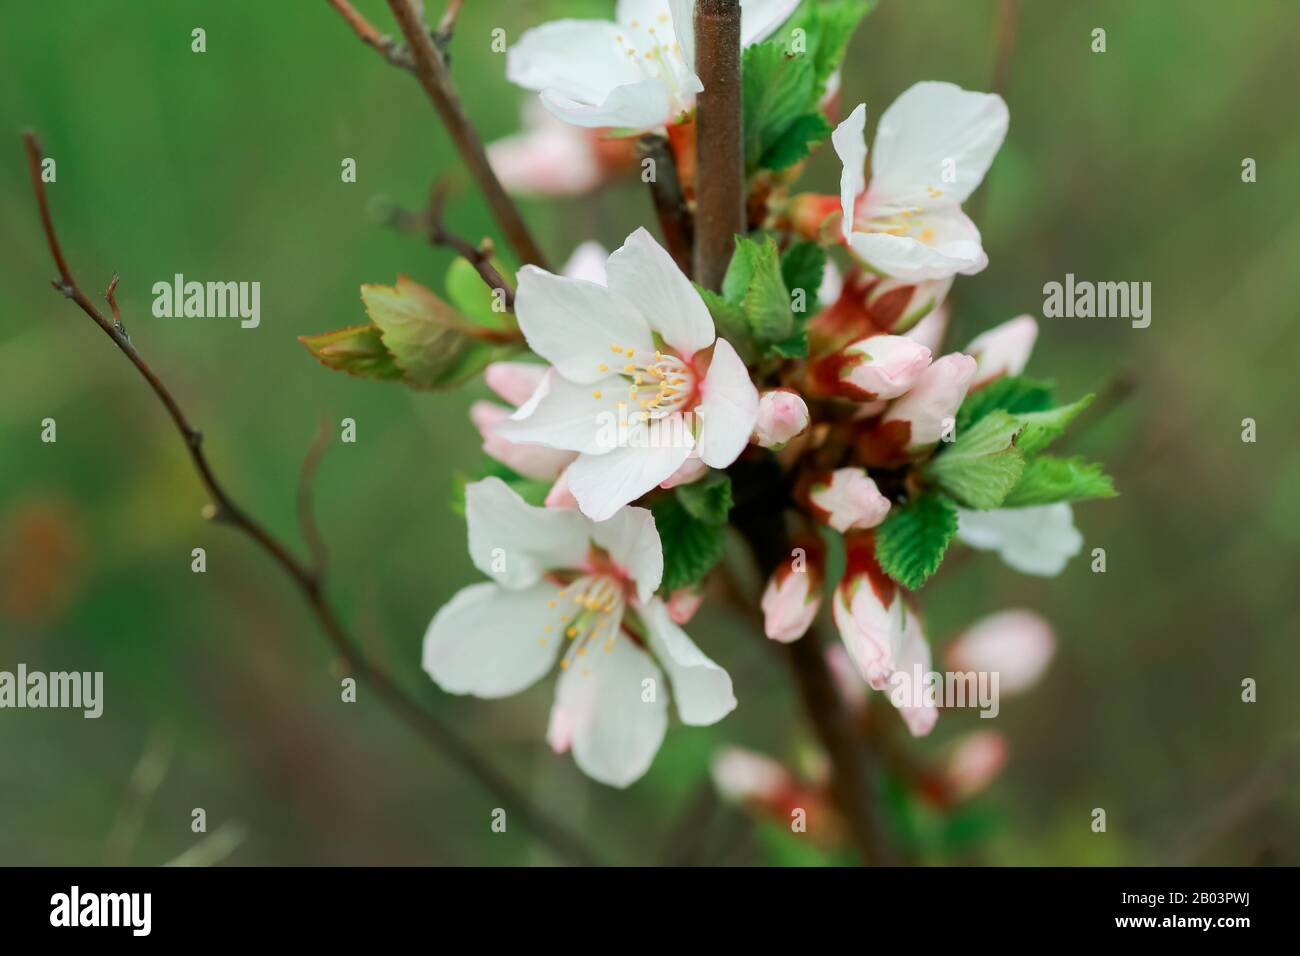 Flower Of Nanking Cherry White Flowers Prunus Tomentosa On A Bush